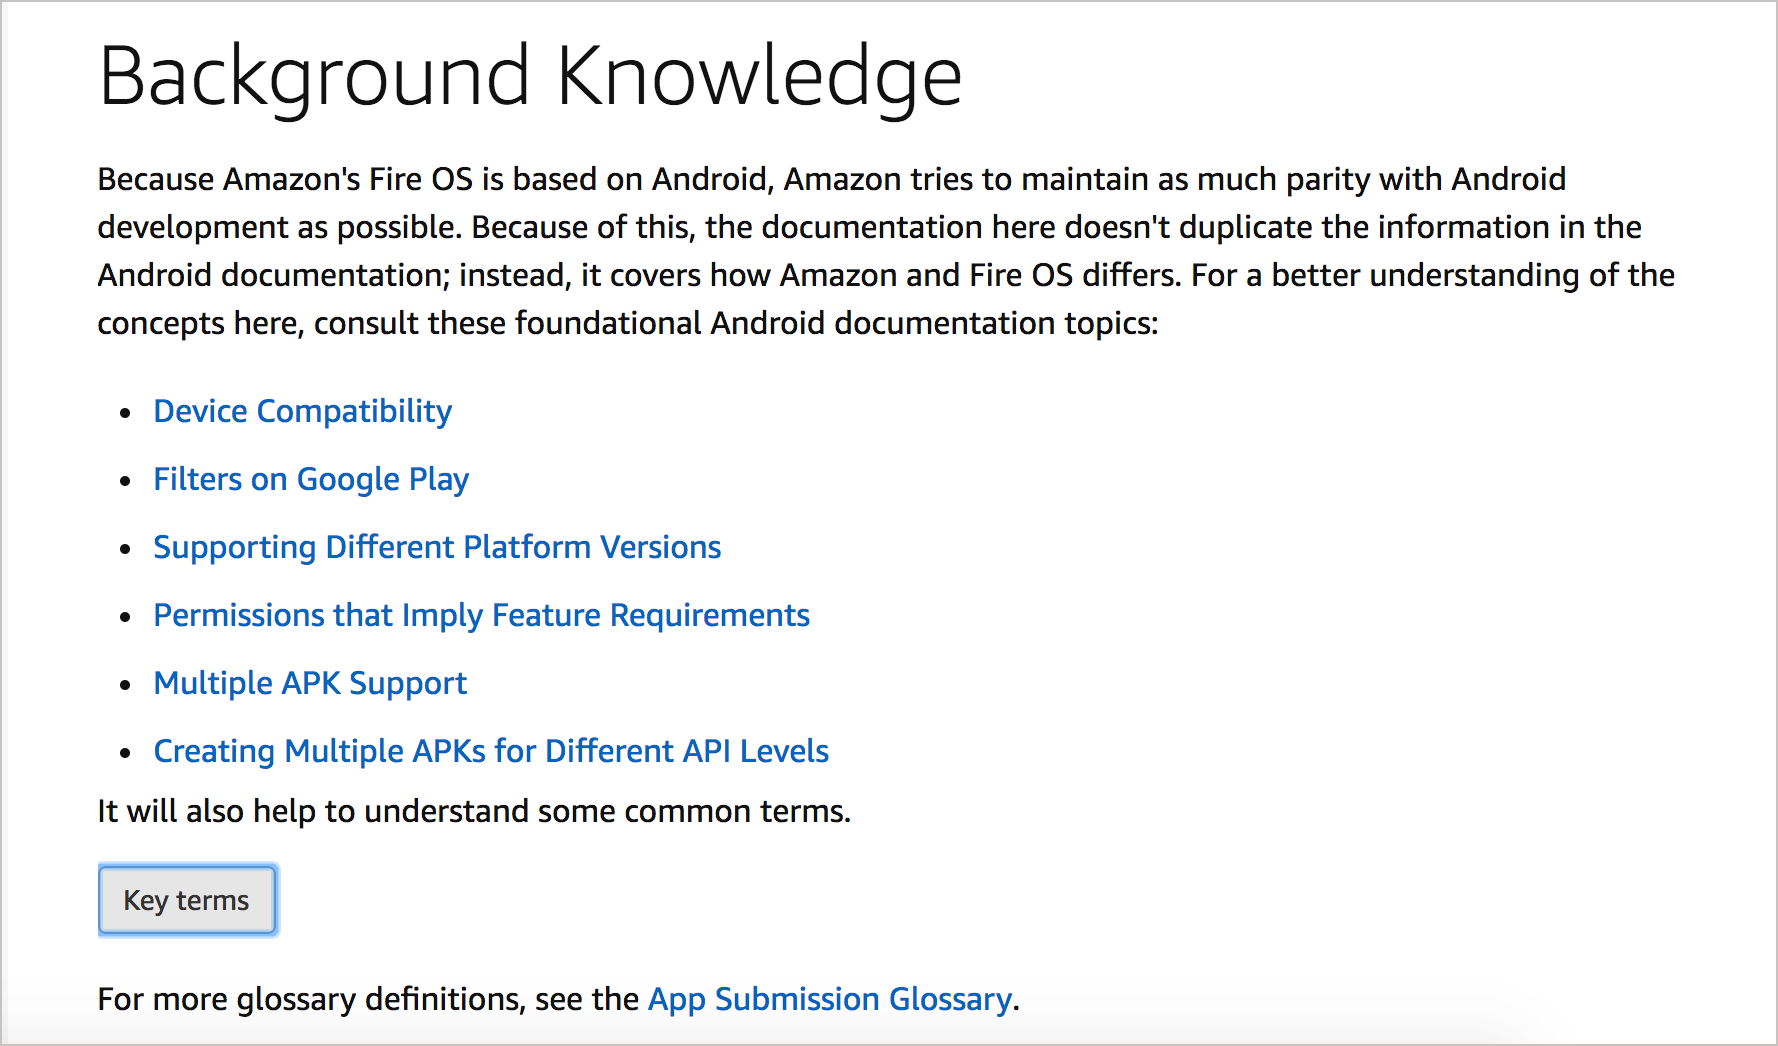 Helping users ramp up on background knowledge